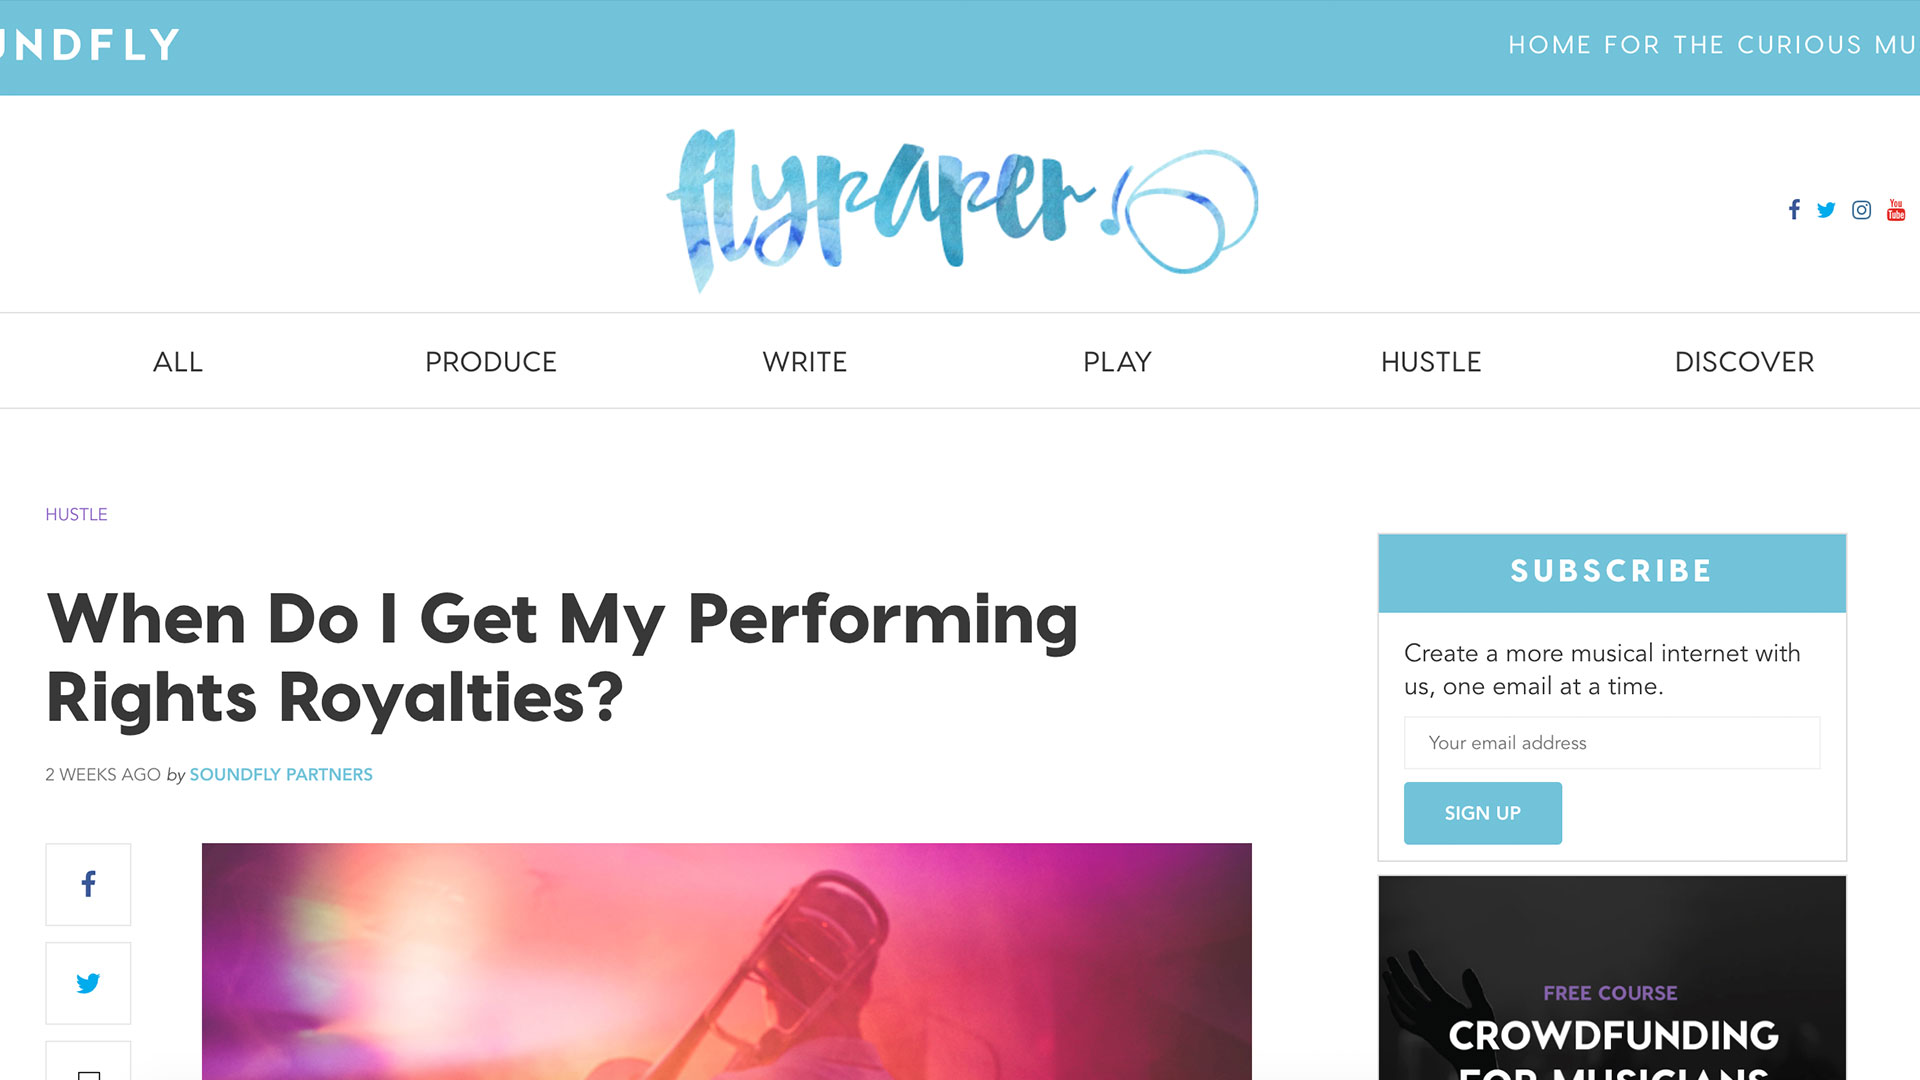 Fairness Rocks News When Do I Get My Performing Rights Royalties?